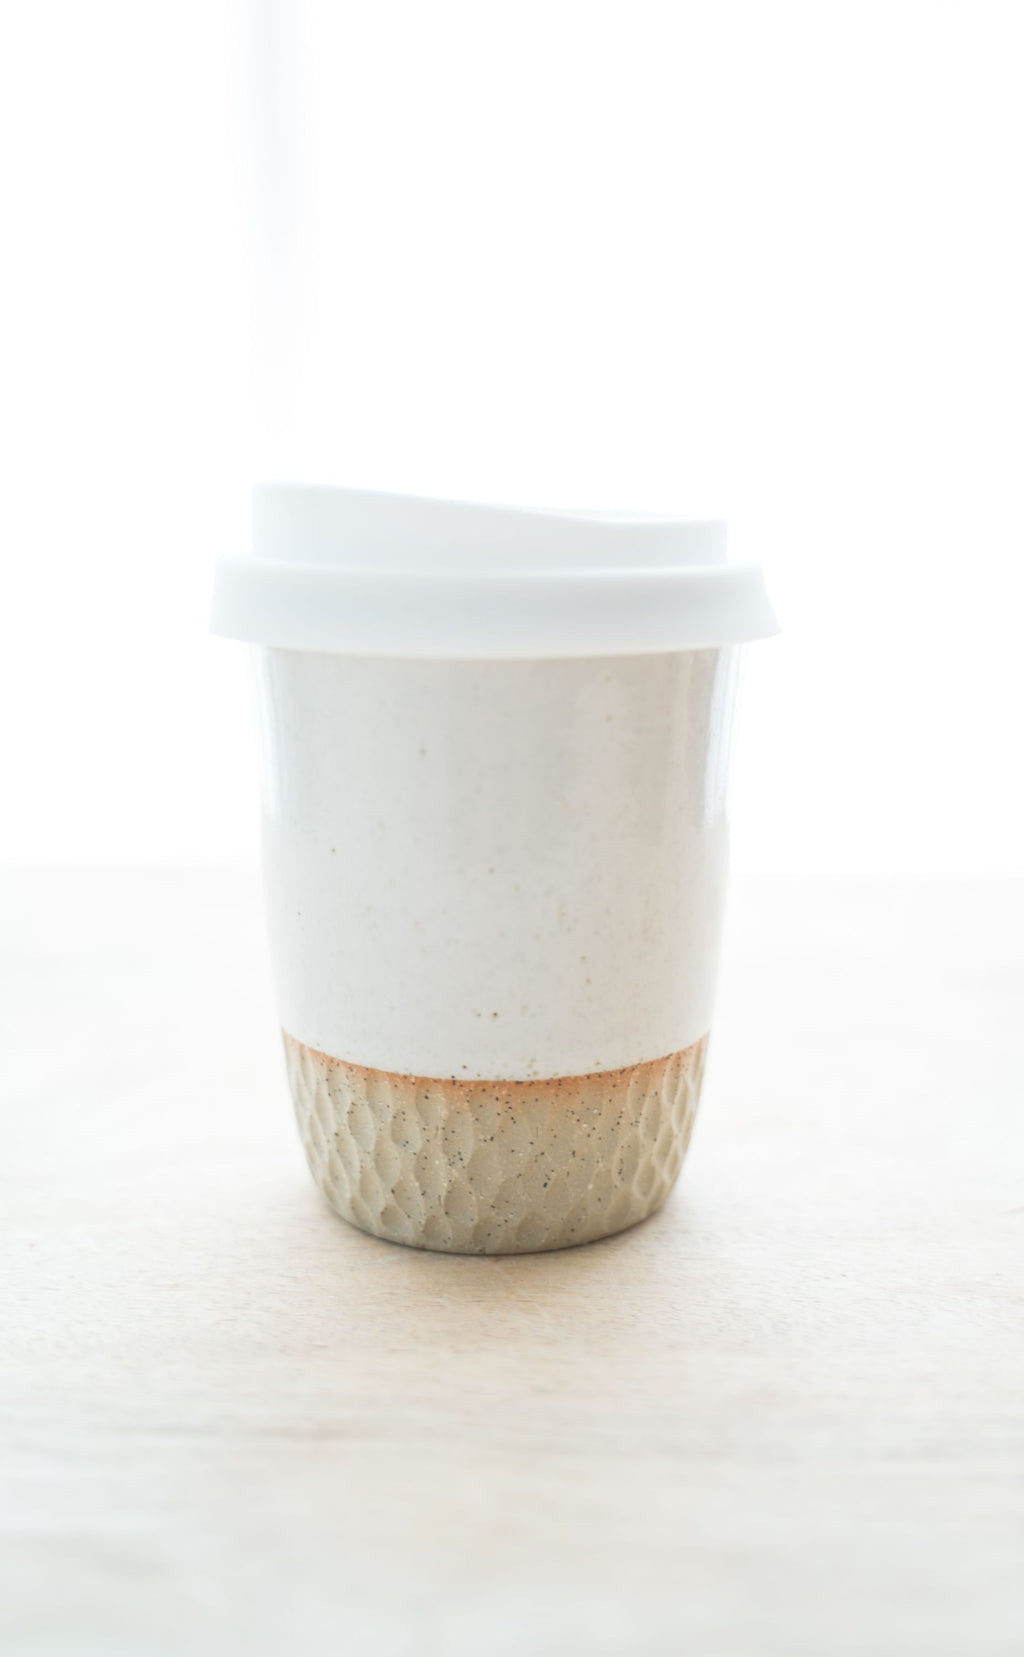 8oz Go cup in natural honeycomb